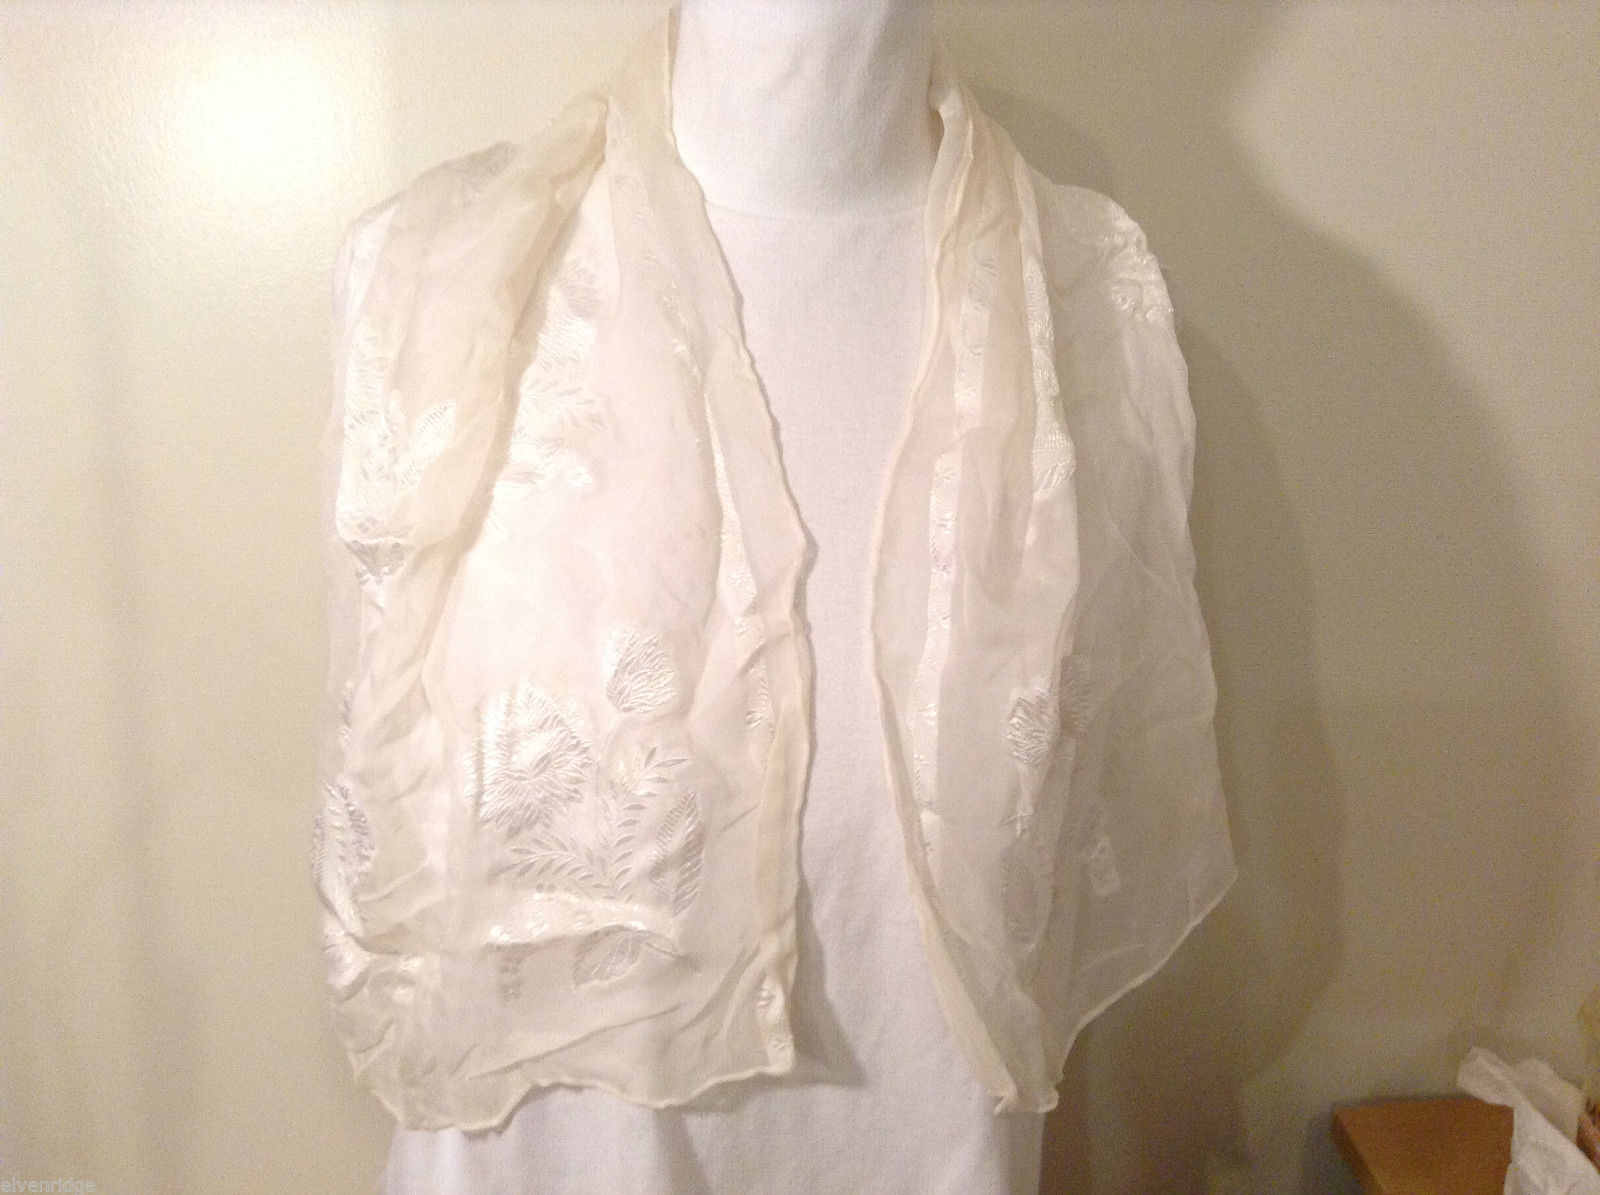 White Sheer Scarf with White Floral Pattern 100% Rayon made in Japan